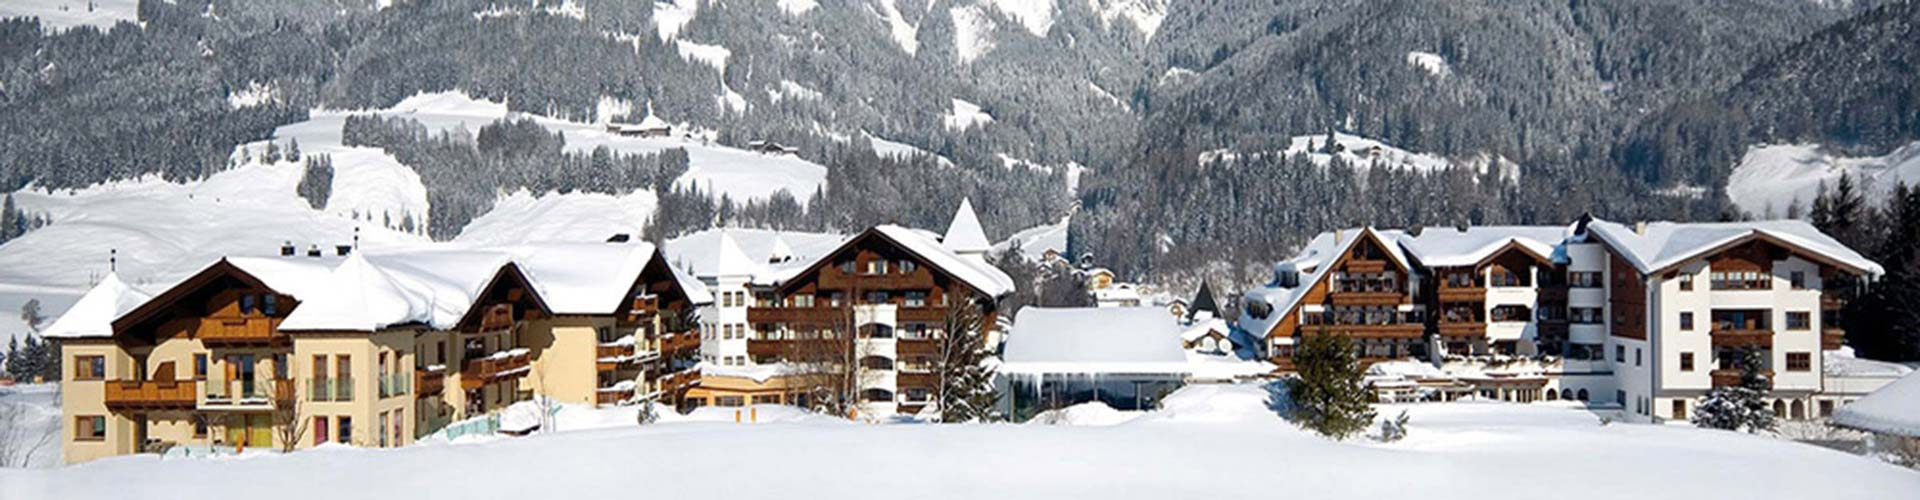 Appartement Iglsberg, Saalbach - Reviews